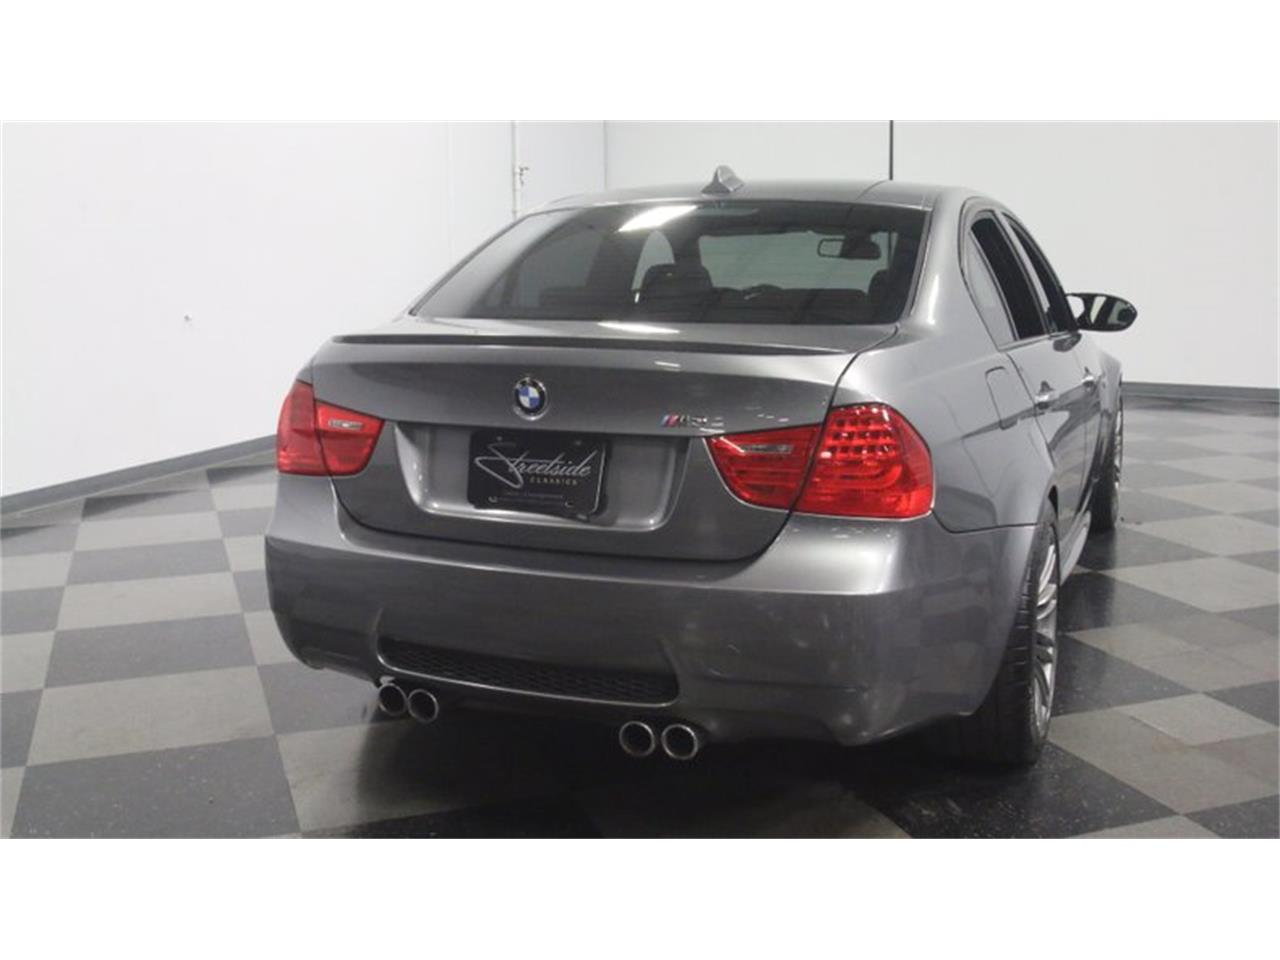 2010 BMW M3 for sale in Lithia Springs, GA – photo 12